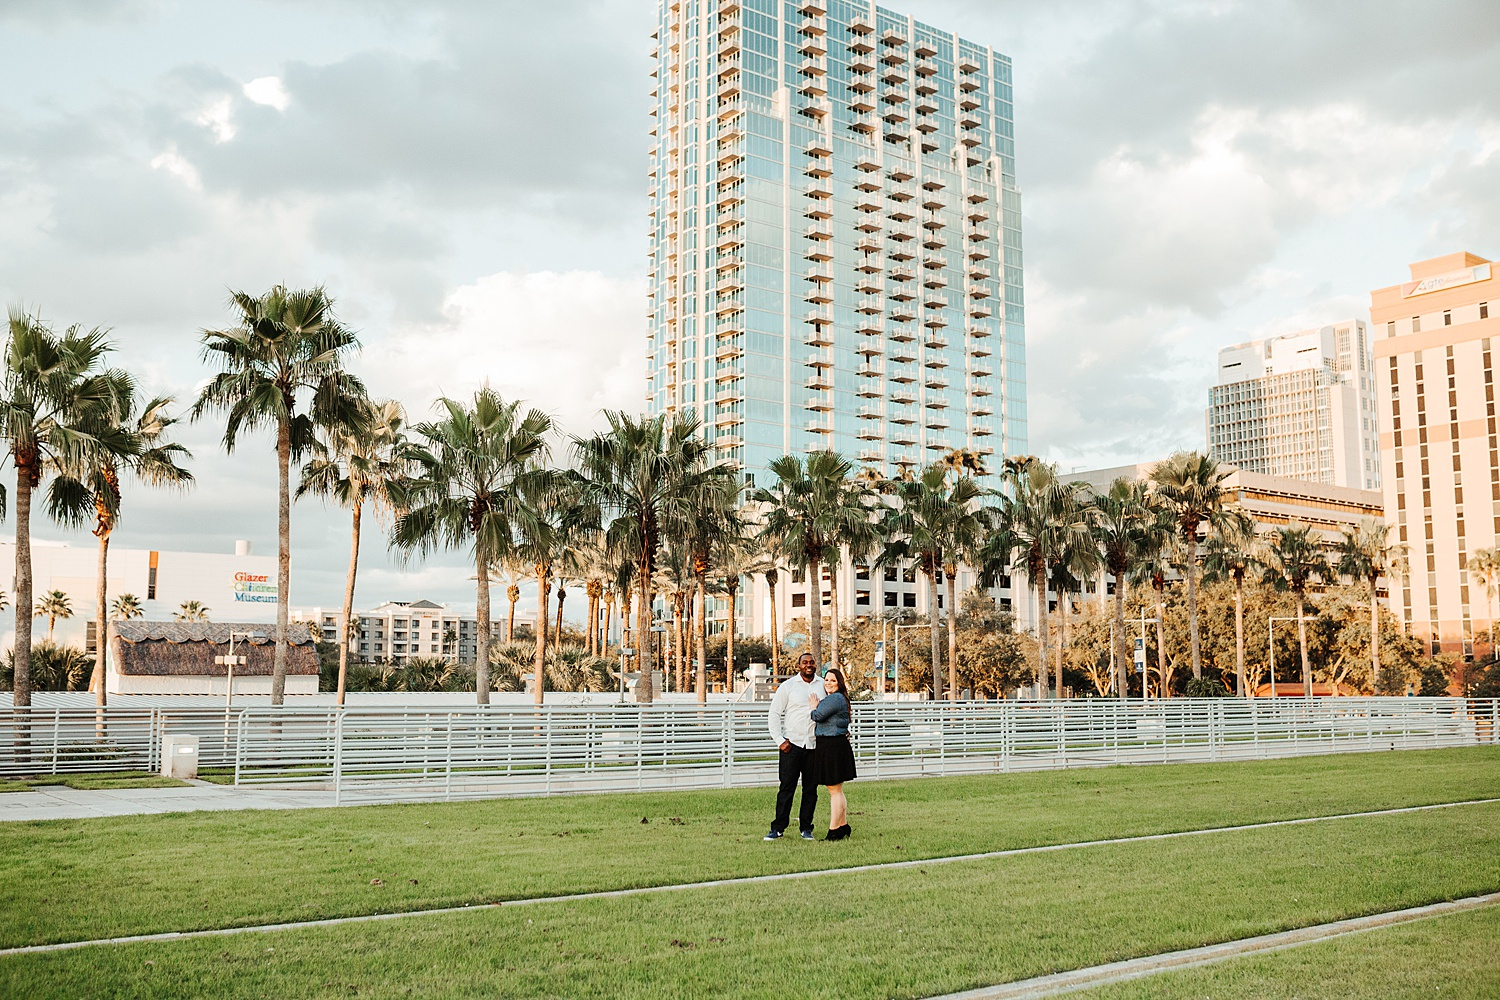 Downtown Tampa Engagement Photos, Downtown Tampa Engagement Photo Ideas, Tampa Wedding Photographers, Ashley Izquierdo, Tampa Engagement Session Ideas, Tampa Engagement Ideas